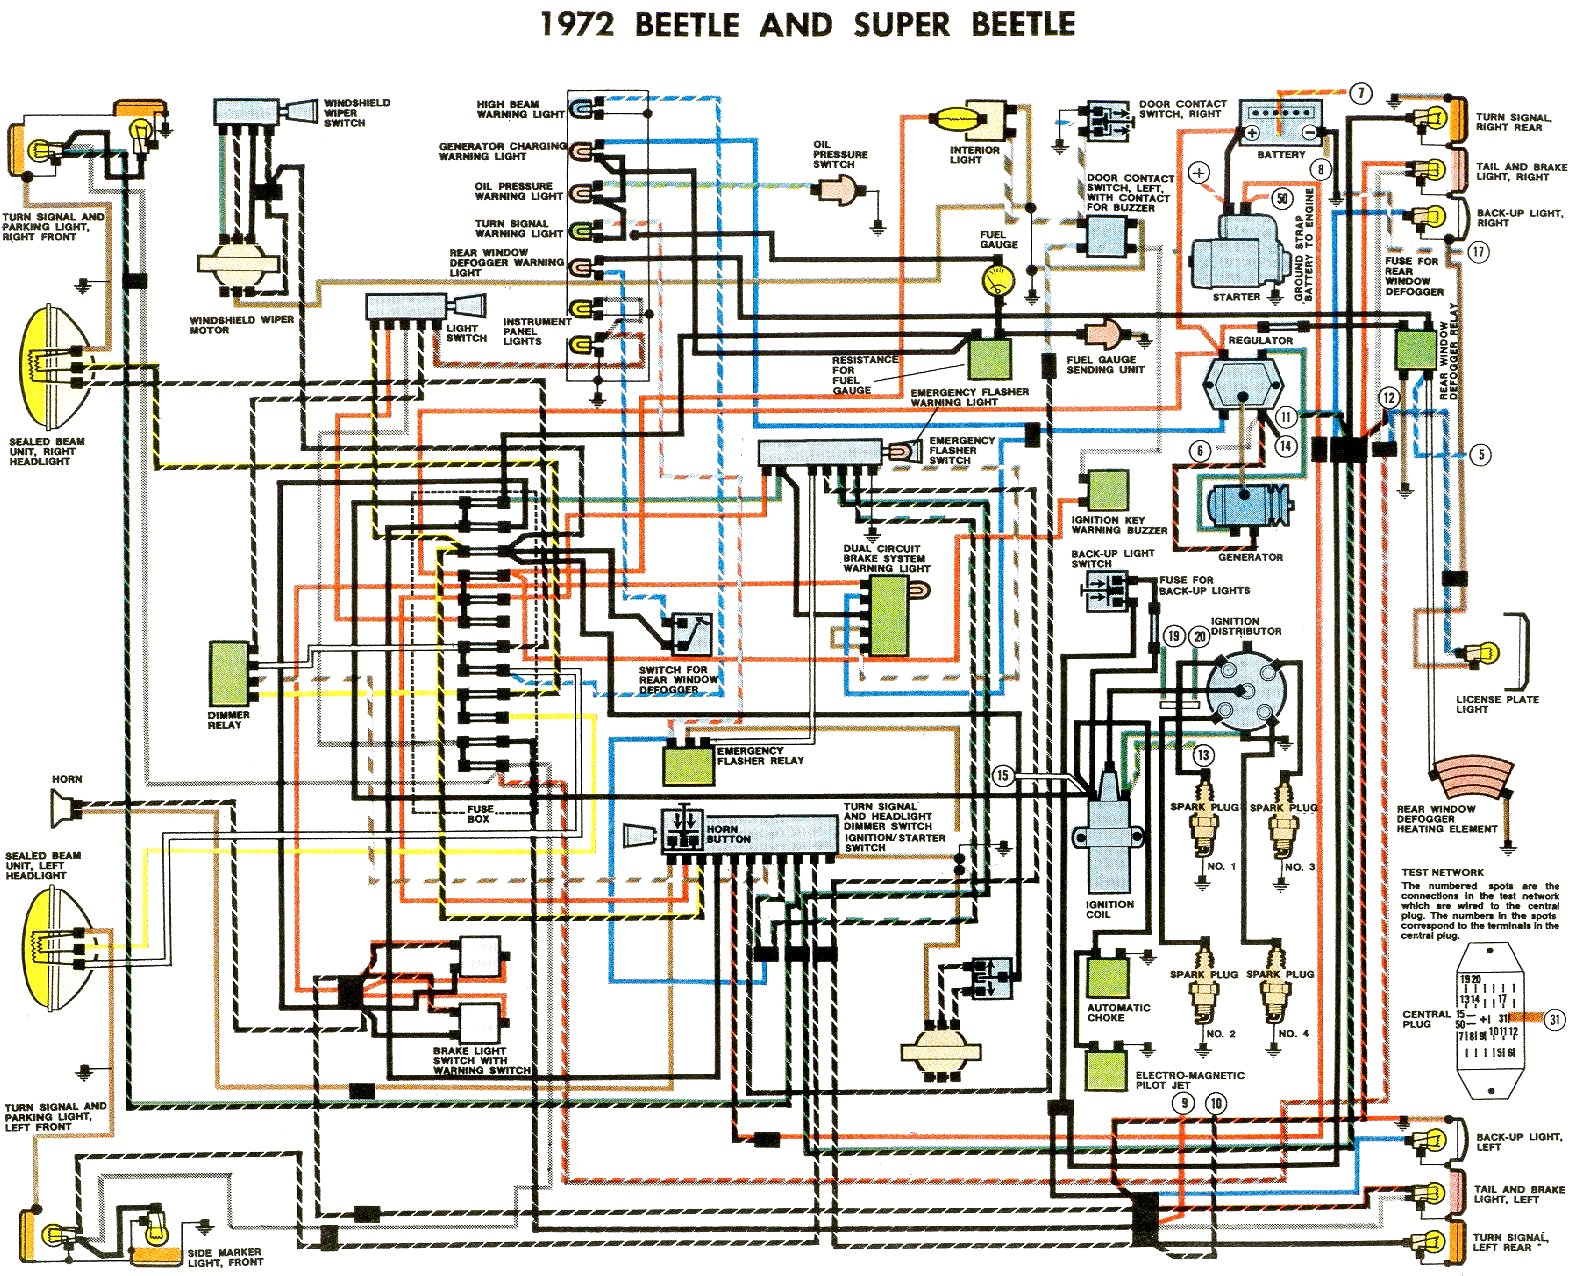 2004 Vw Passat Wiring Diagram Efcaviation Com